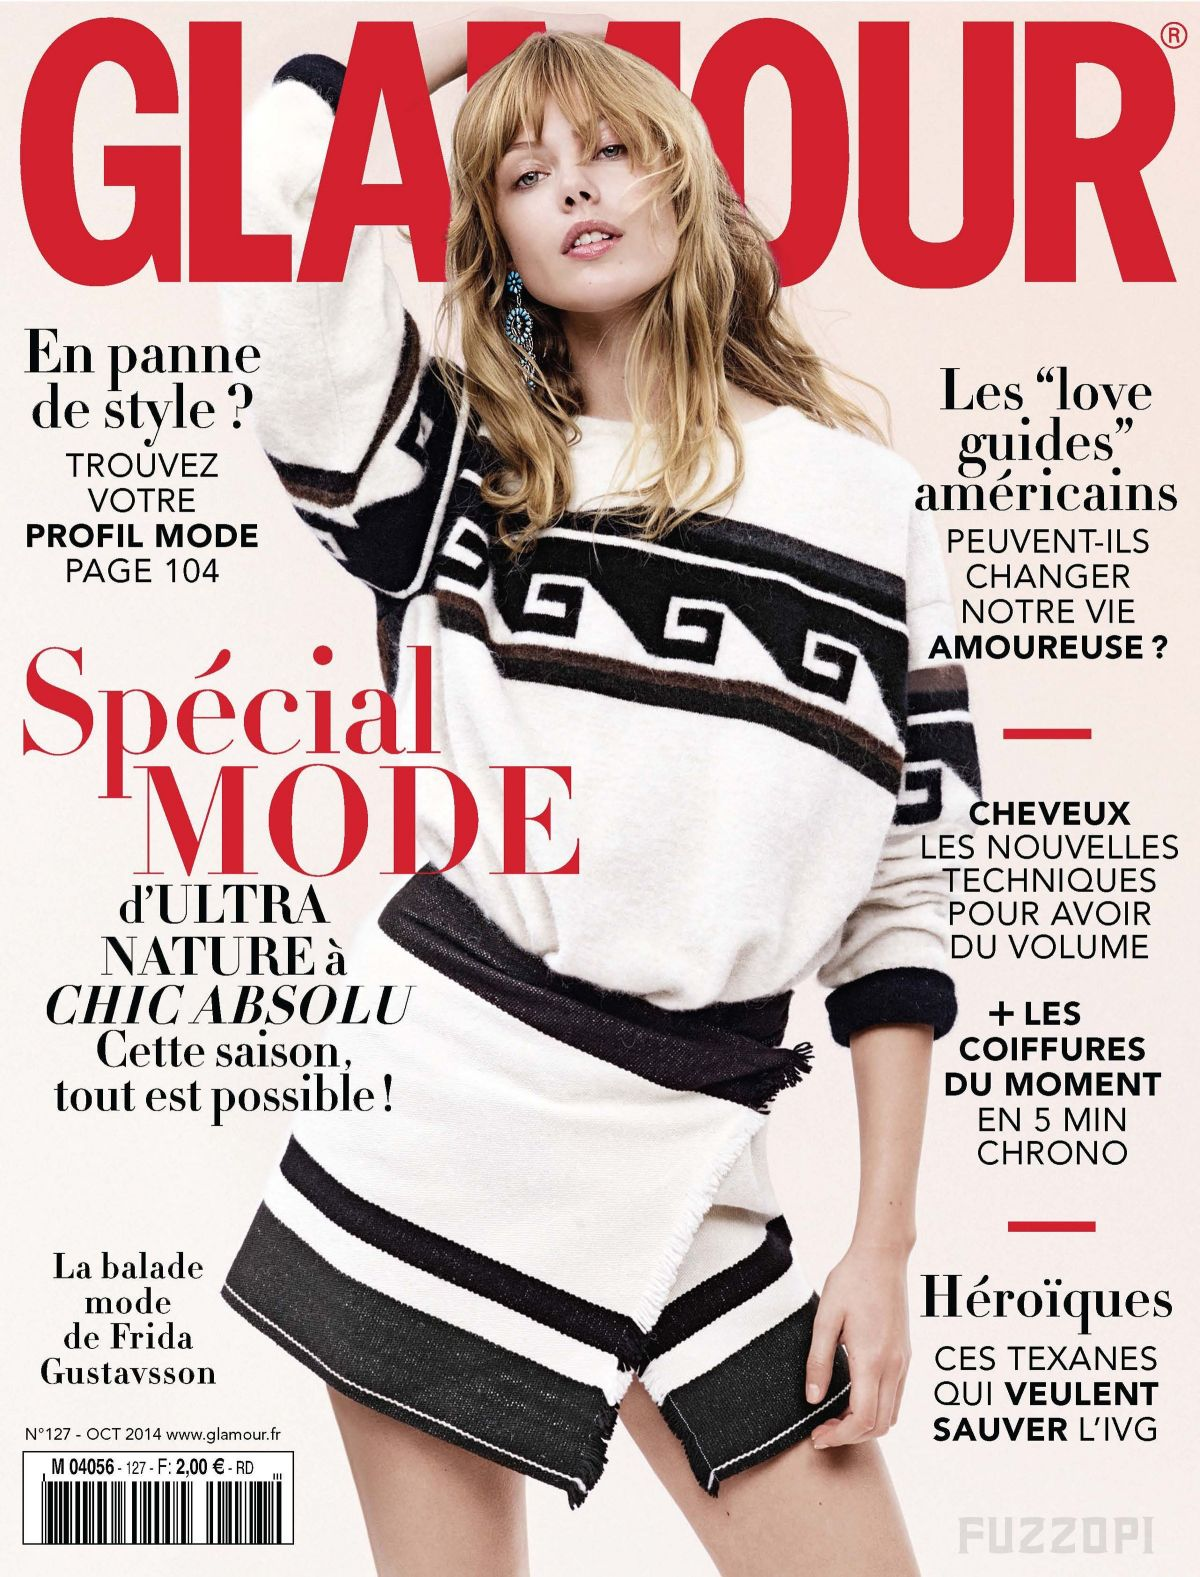 FRIDA GUSTAVSSON on the Cover of Glamour Magazine, October 2014 Issue